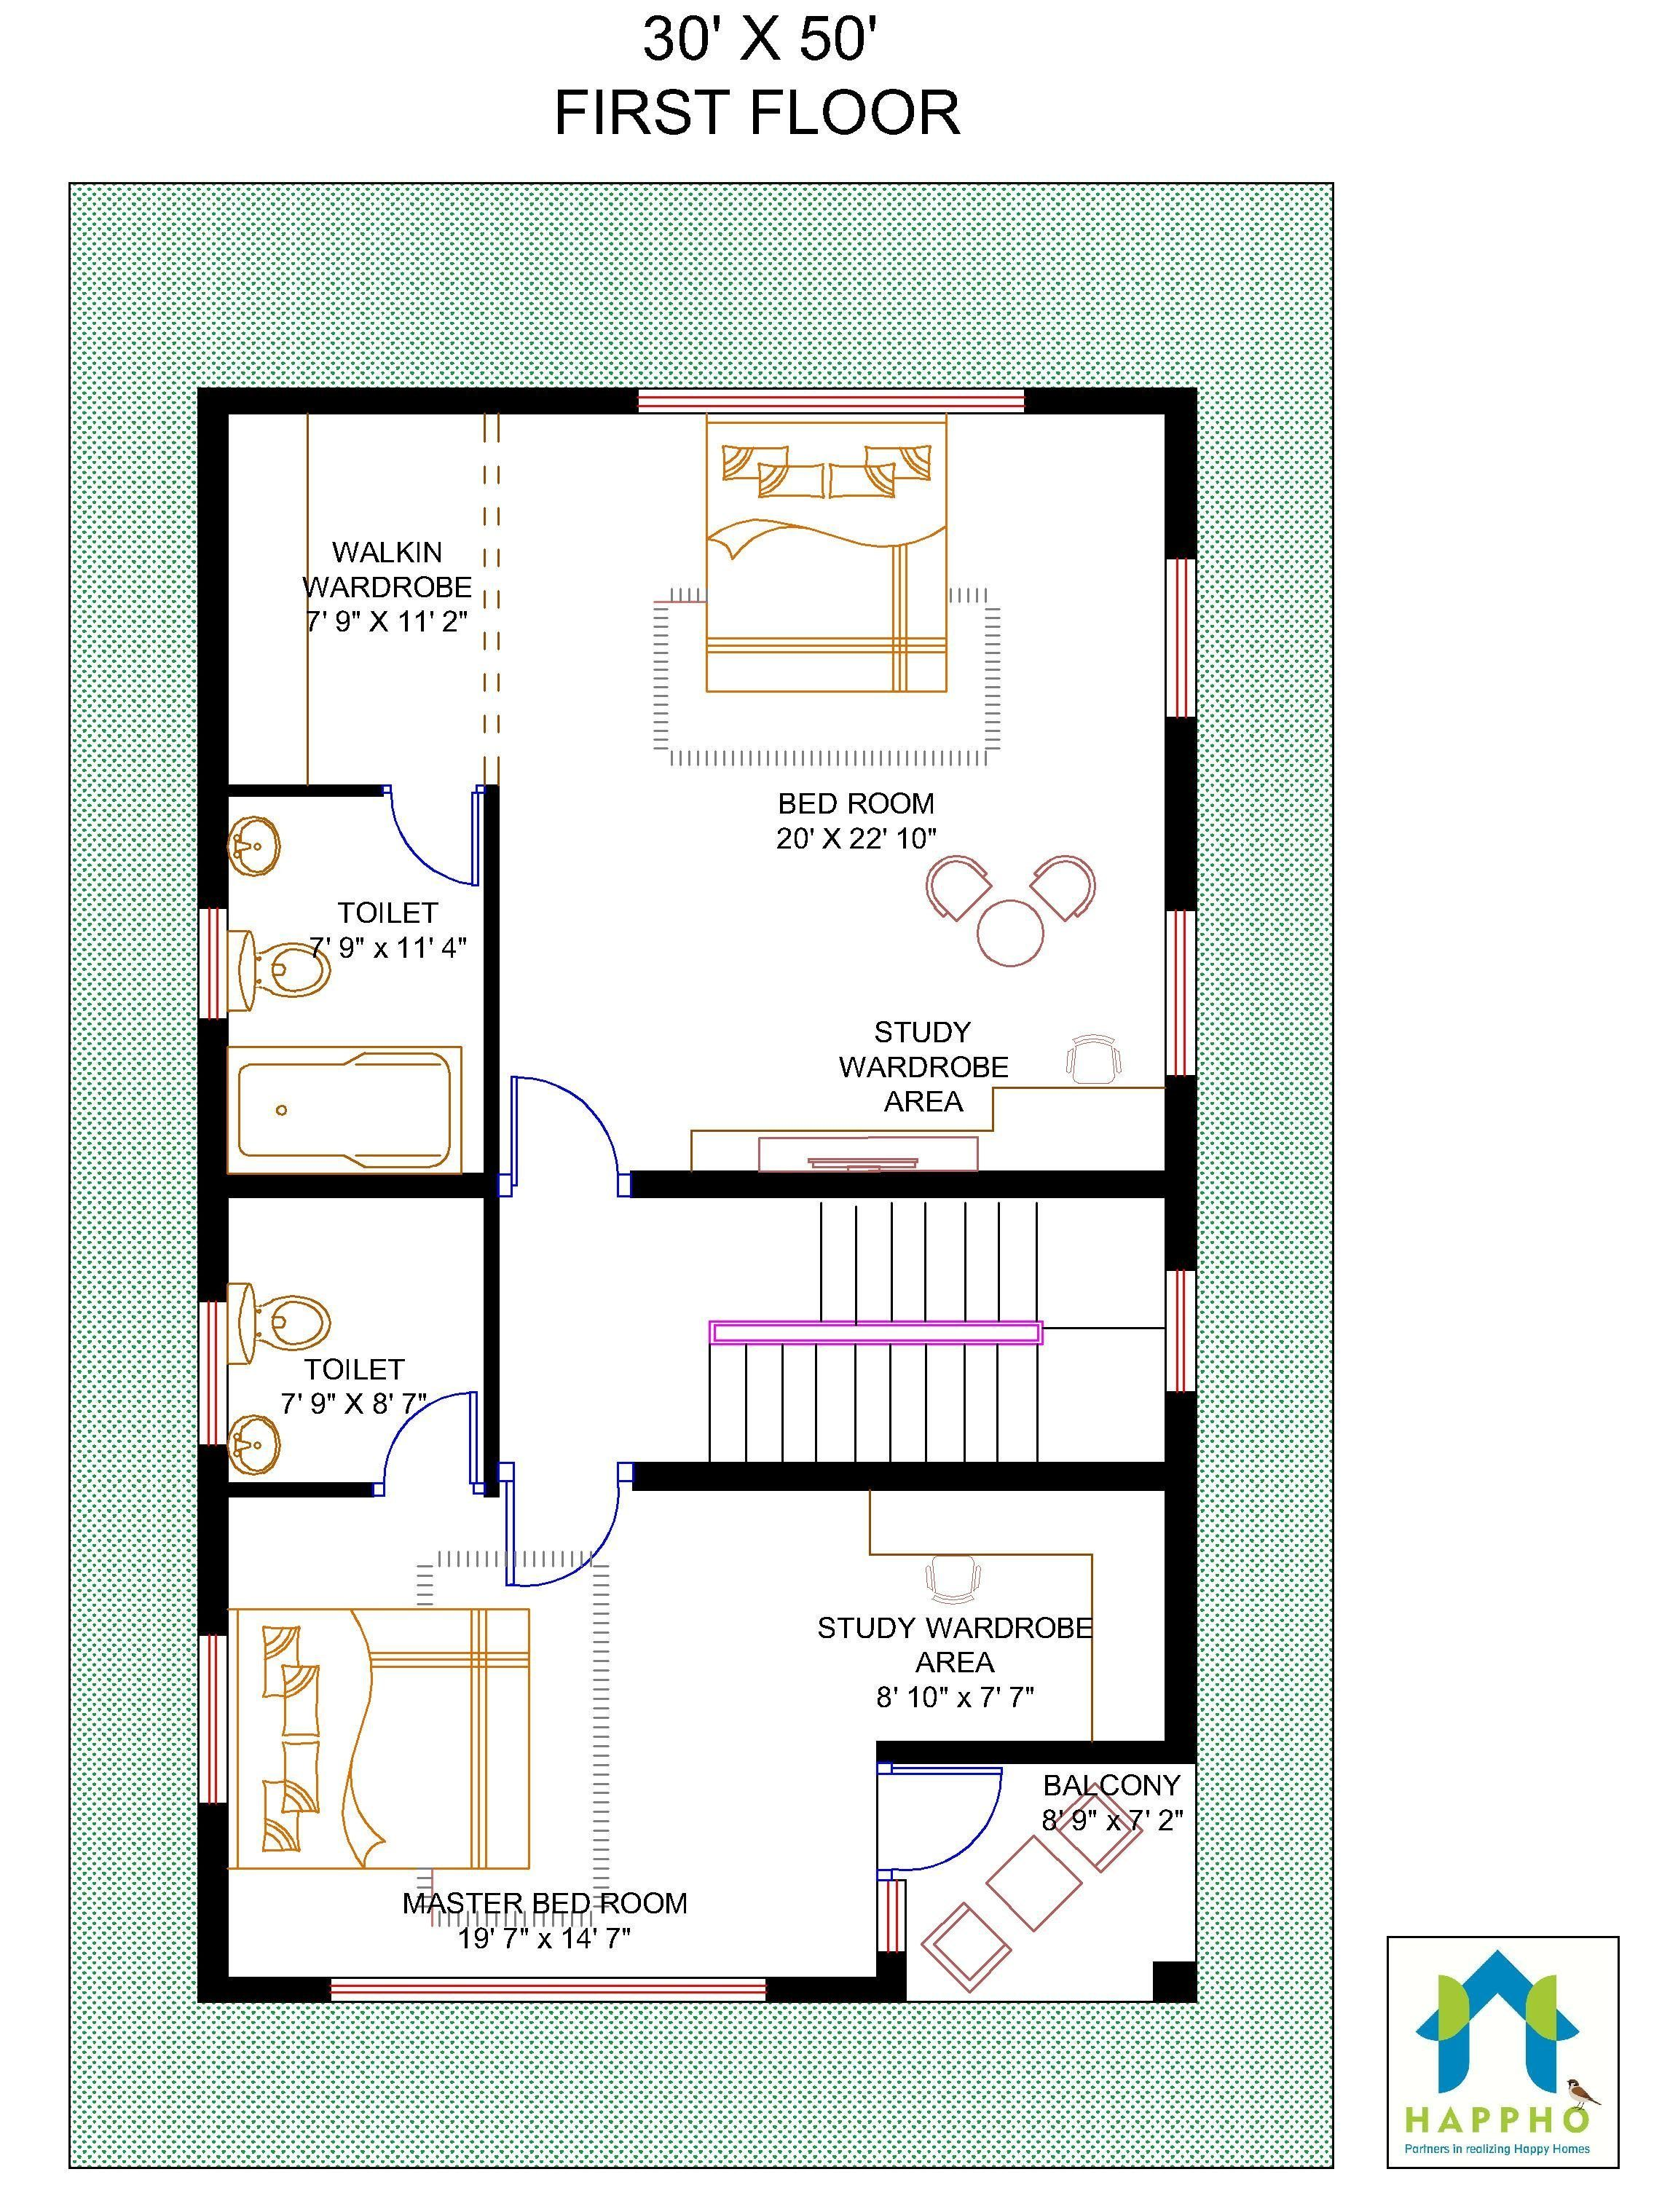 21 Scrumptious Floor Plan 1000 Sq Ft Square Feet To Style Up Your Floor Plan Floor Plans Castle Floor Plan Condo Floor Plans